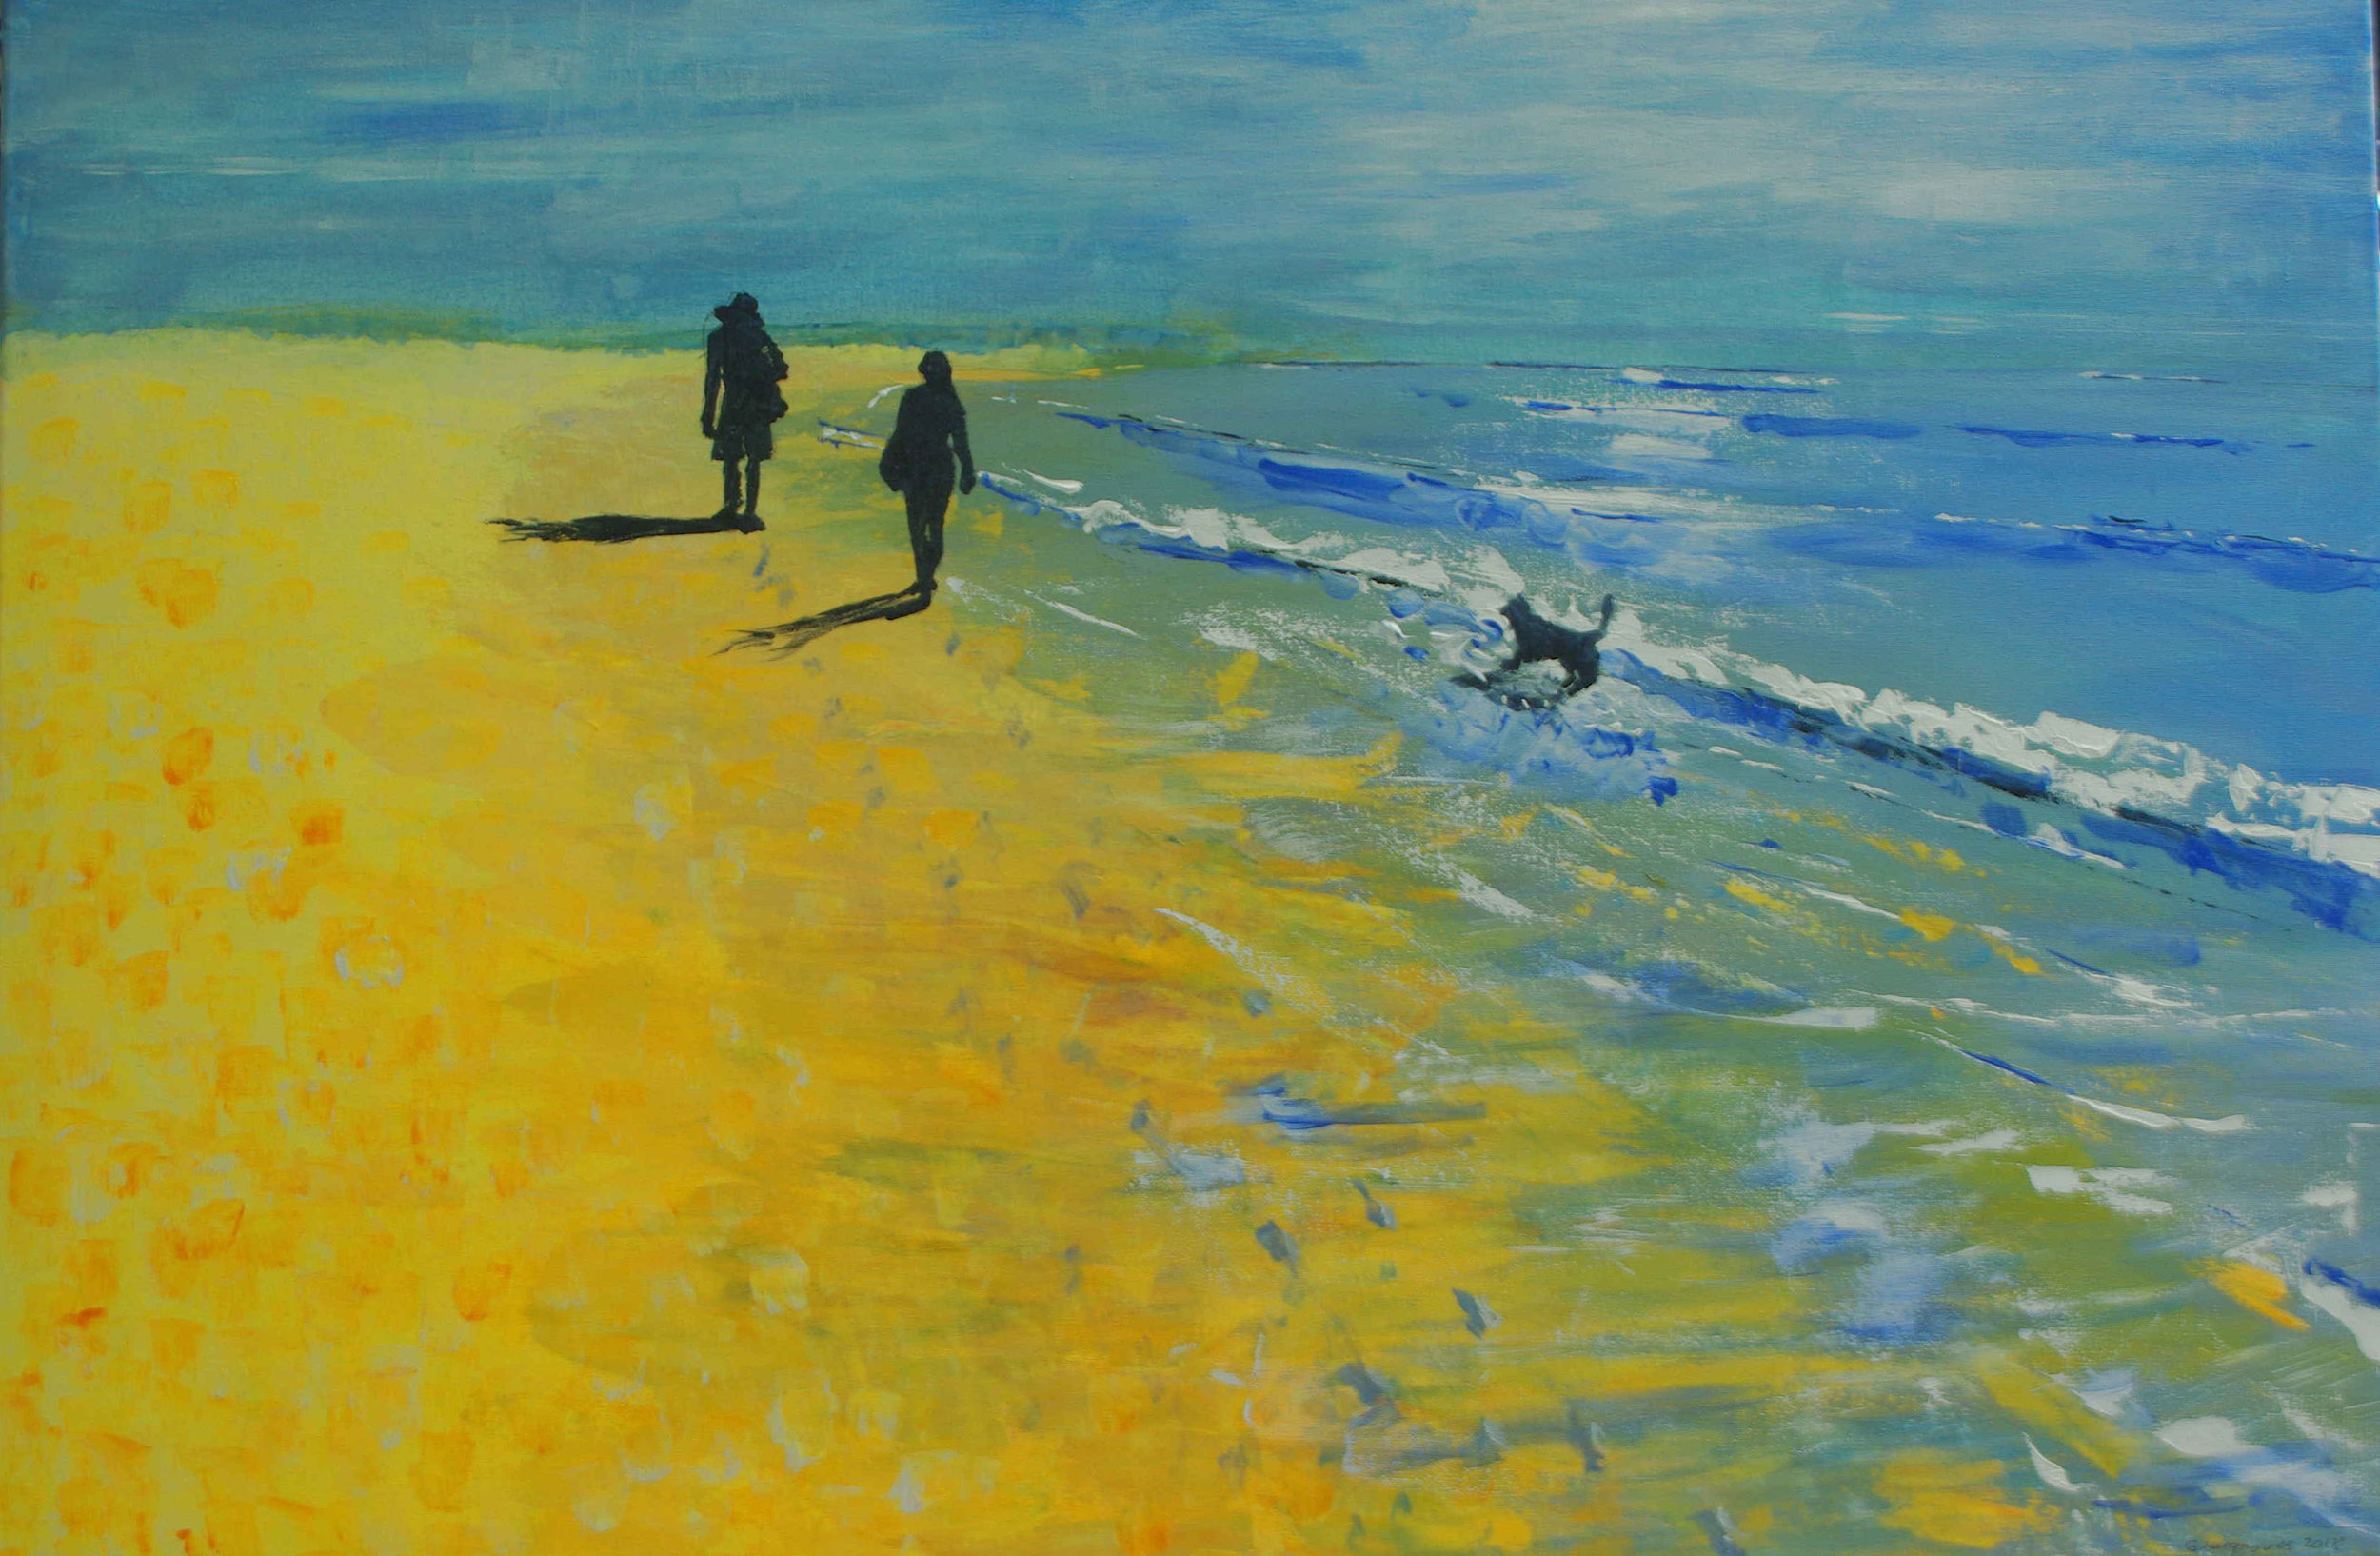 Beachwalkers and Dog